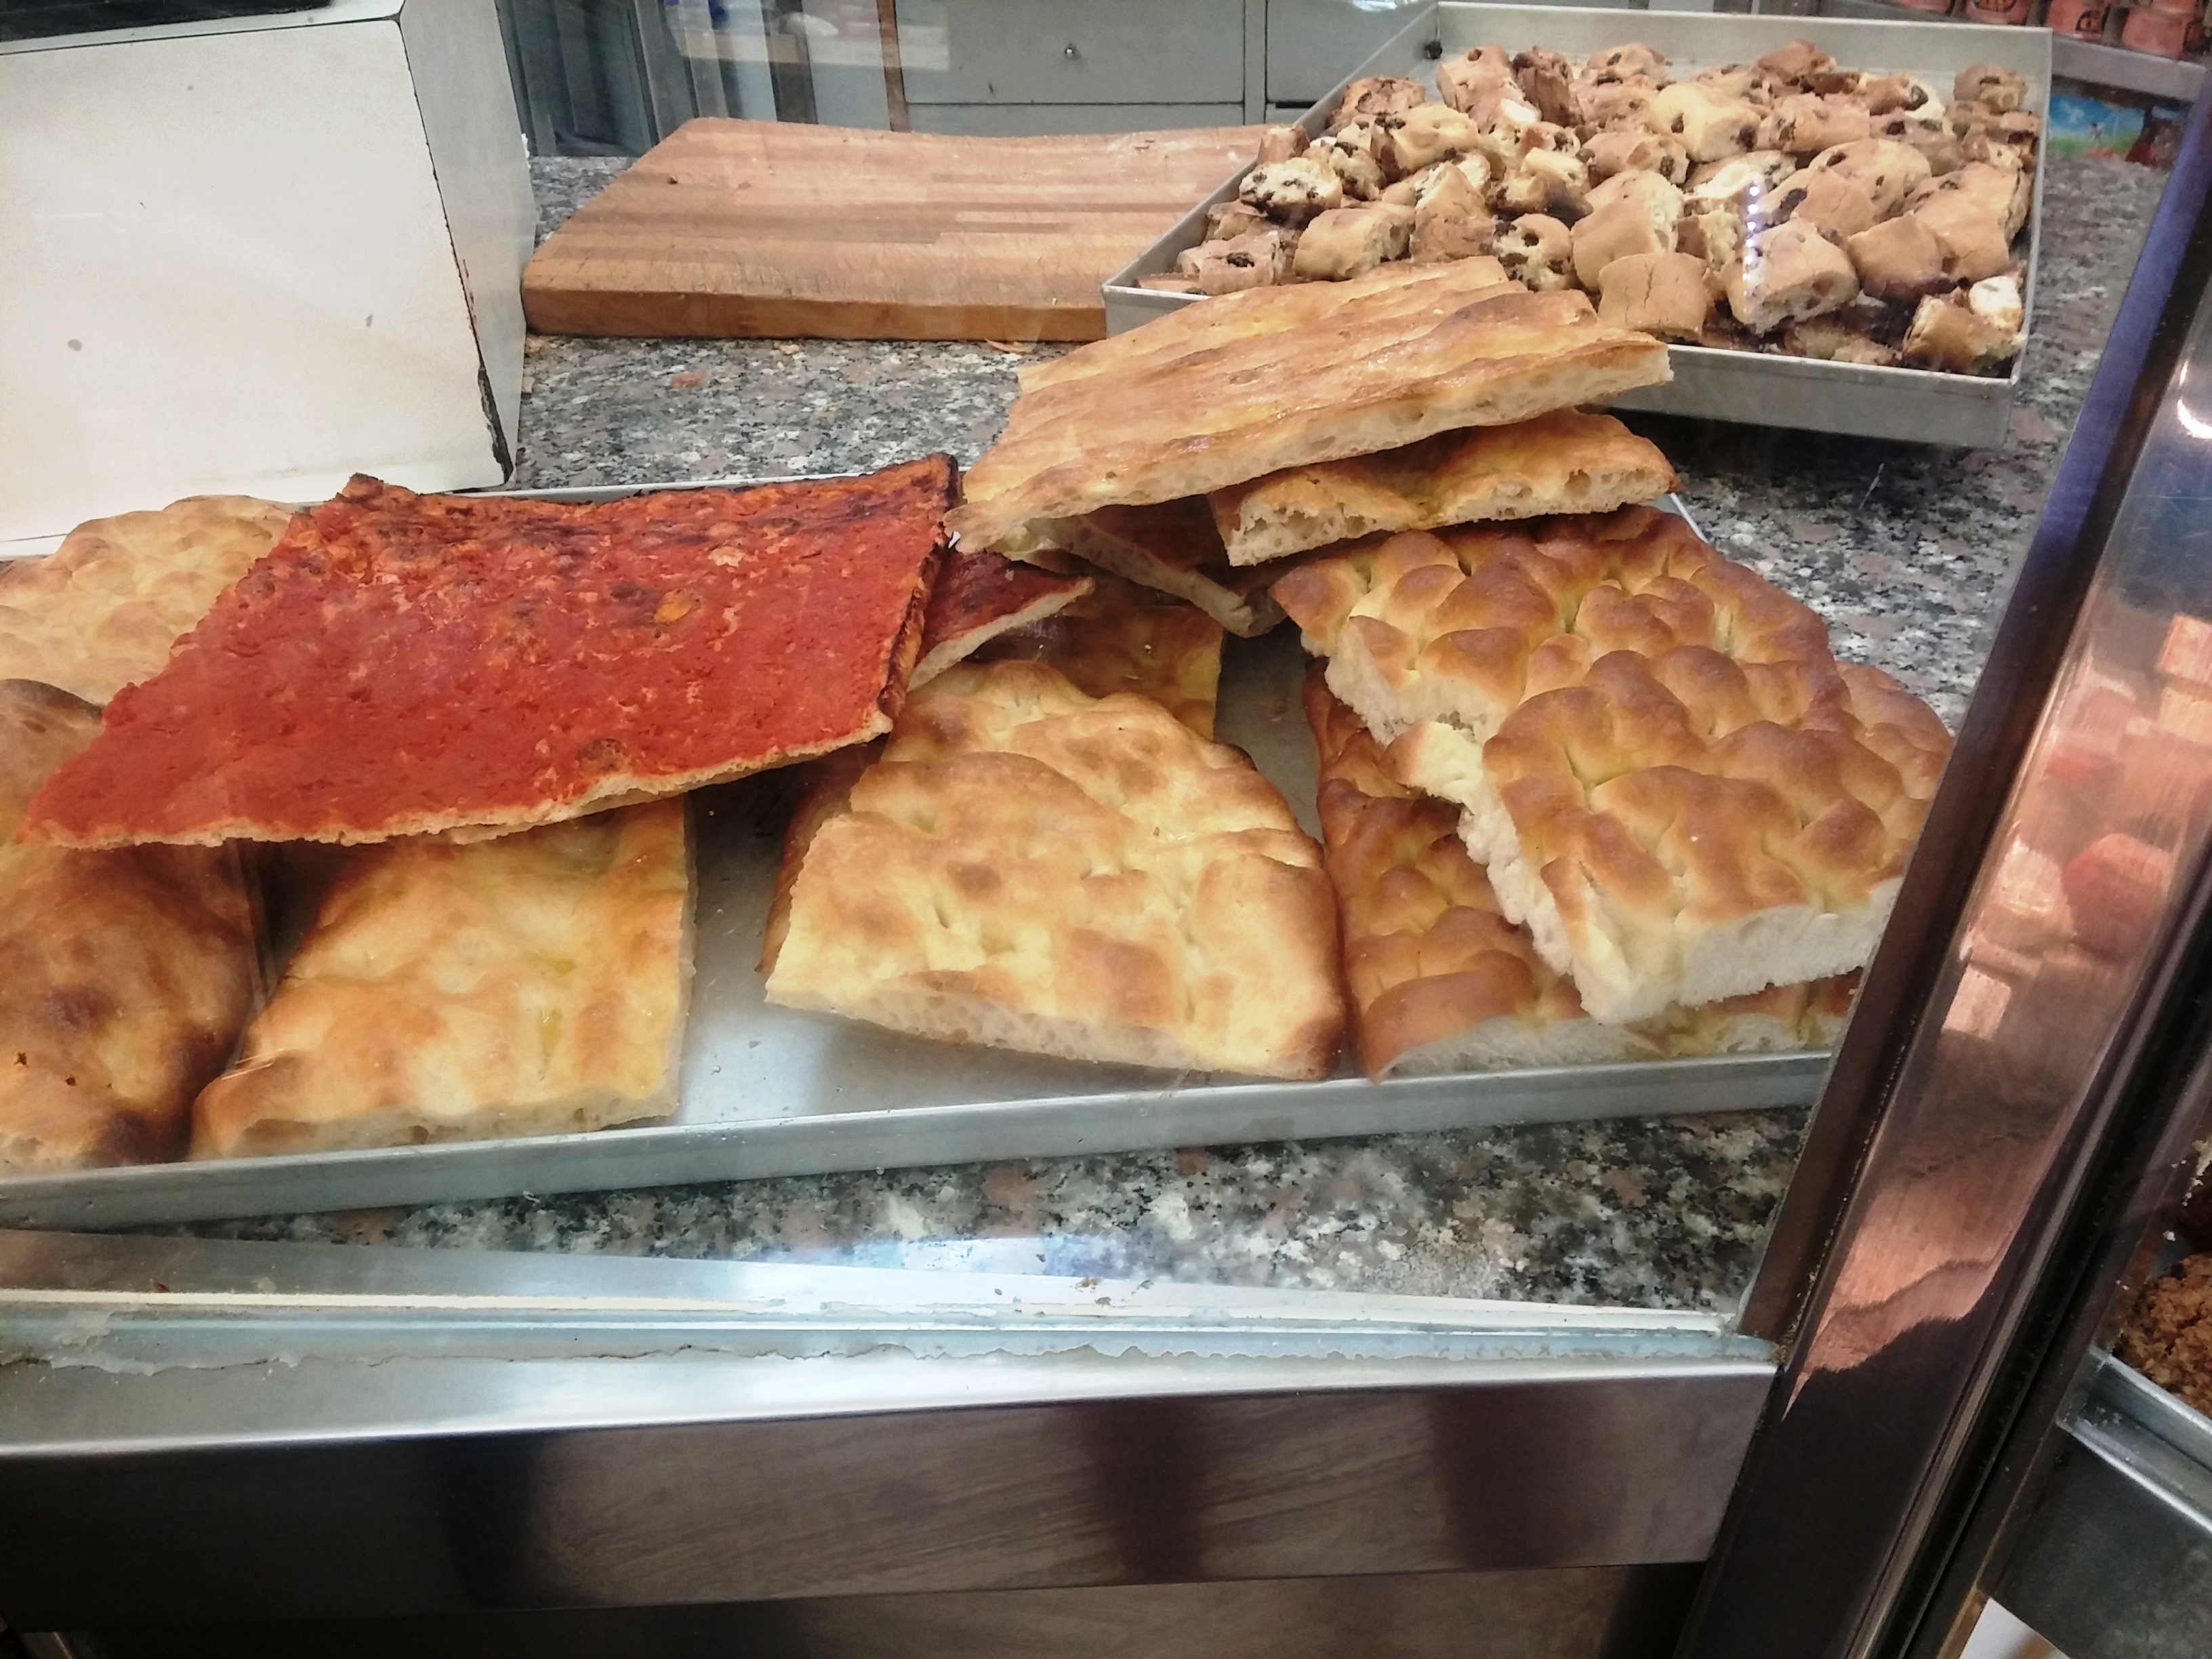 plumper flatbread us Brits (and I suspect Americans) know as focaccia ...